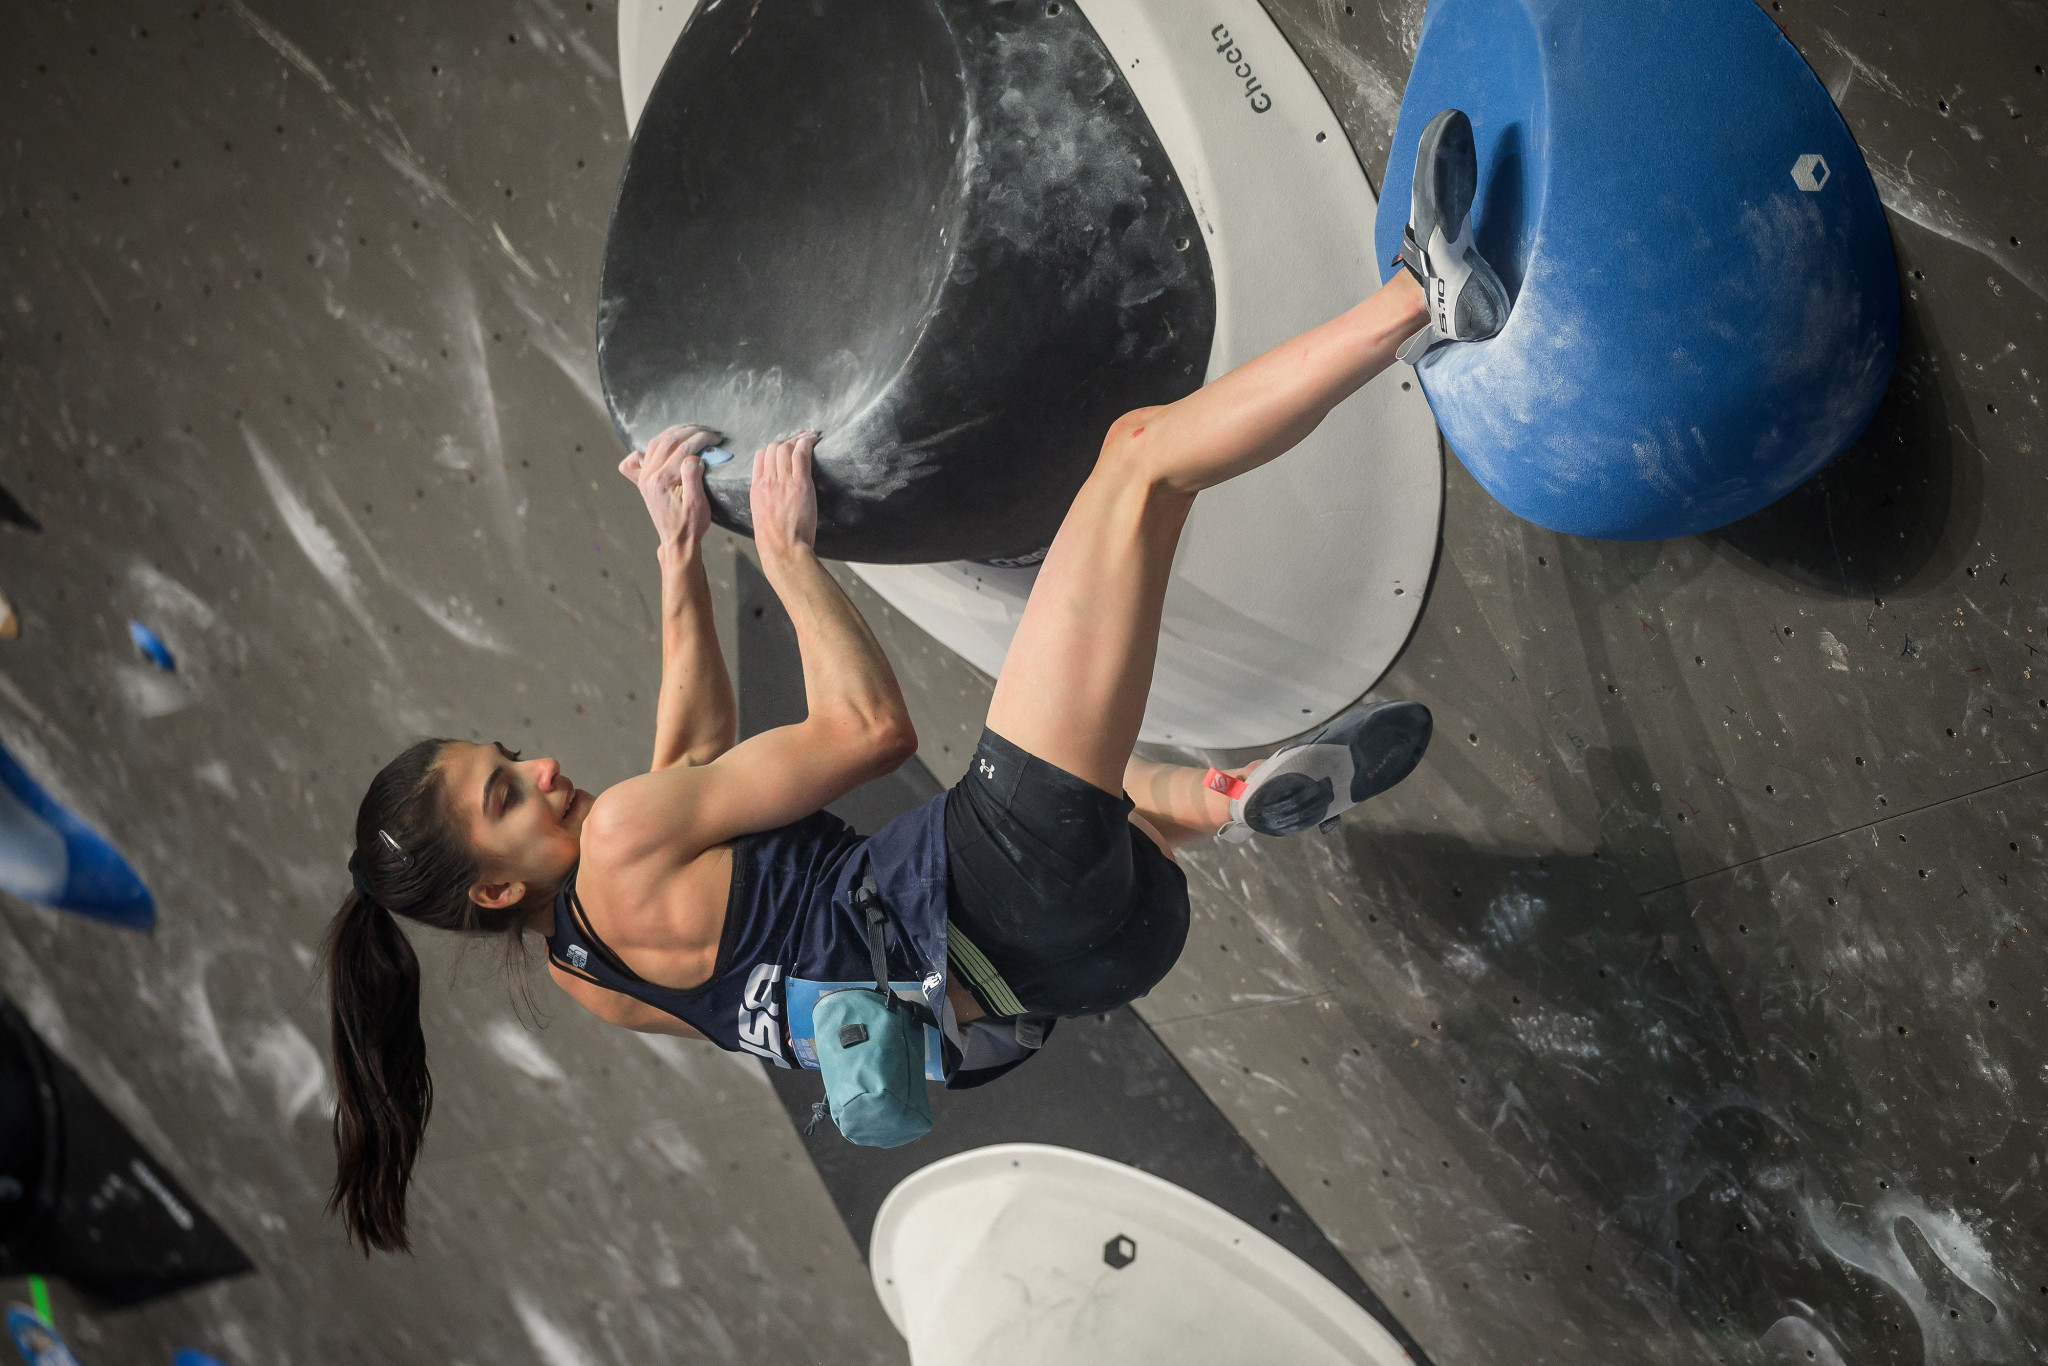 Teenager Grossman delights Salt Lake City crowd with first IFSC World Cup win